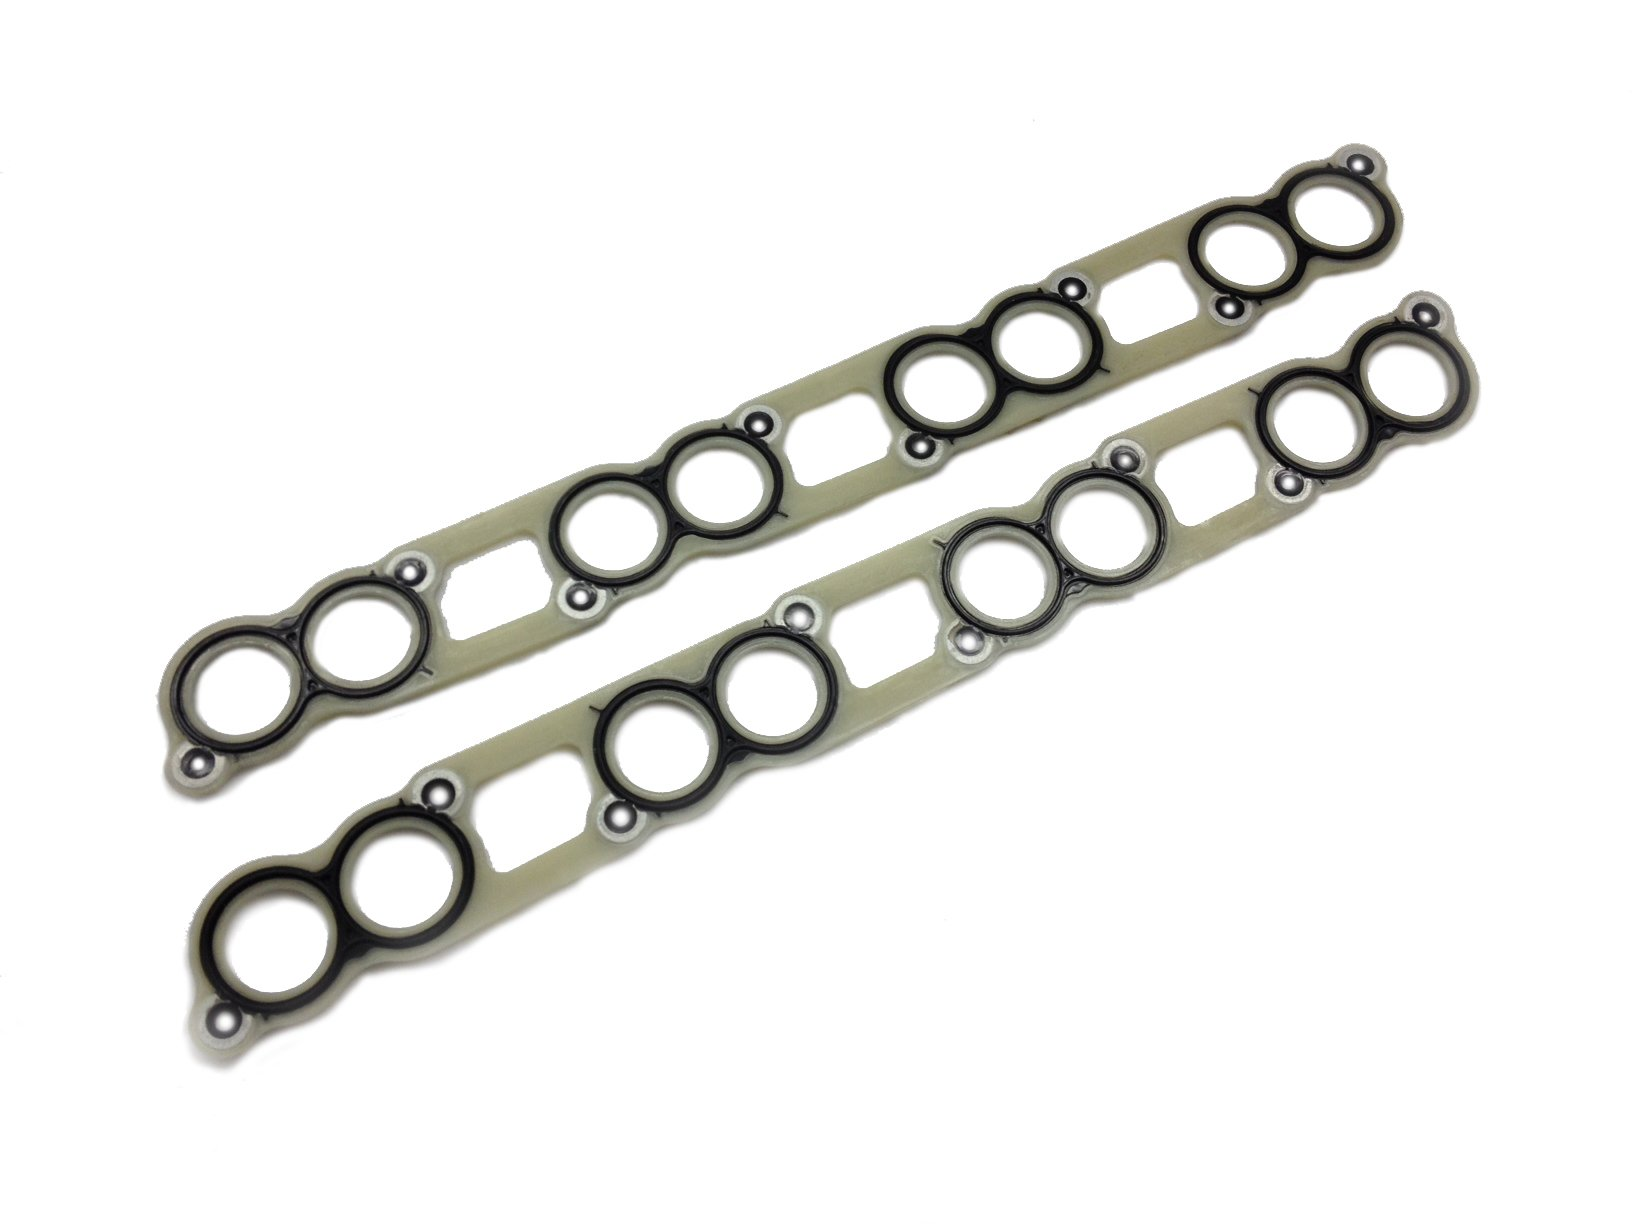 Ford 6.0L intake manifold gasket set for 2003 - 2007 Ford 6.0L Powerstroke diesel F250 F350 F450 F550 Excursion E-Series (Replaces Ford 3C3Z-9433-BJ; 3C3Z-9439-AA; 3C3Z-9T514-AG)